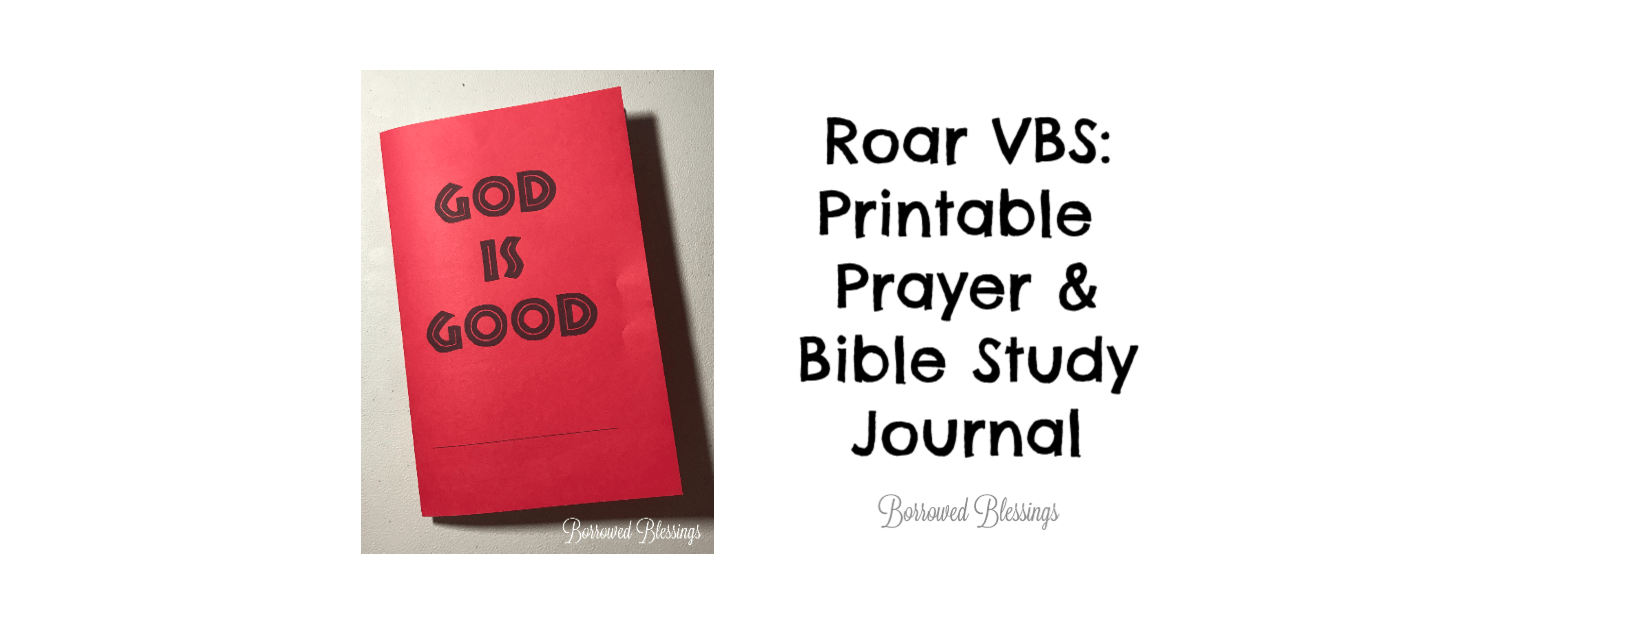 graphic about Bible Study Journal Printable named Roar VBS: Printable Prayer Bible Investigate Magazine Â« Borrowed